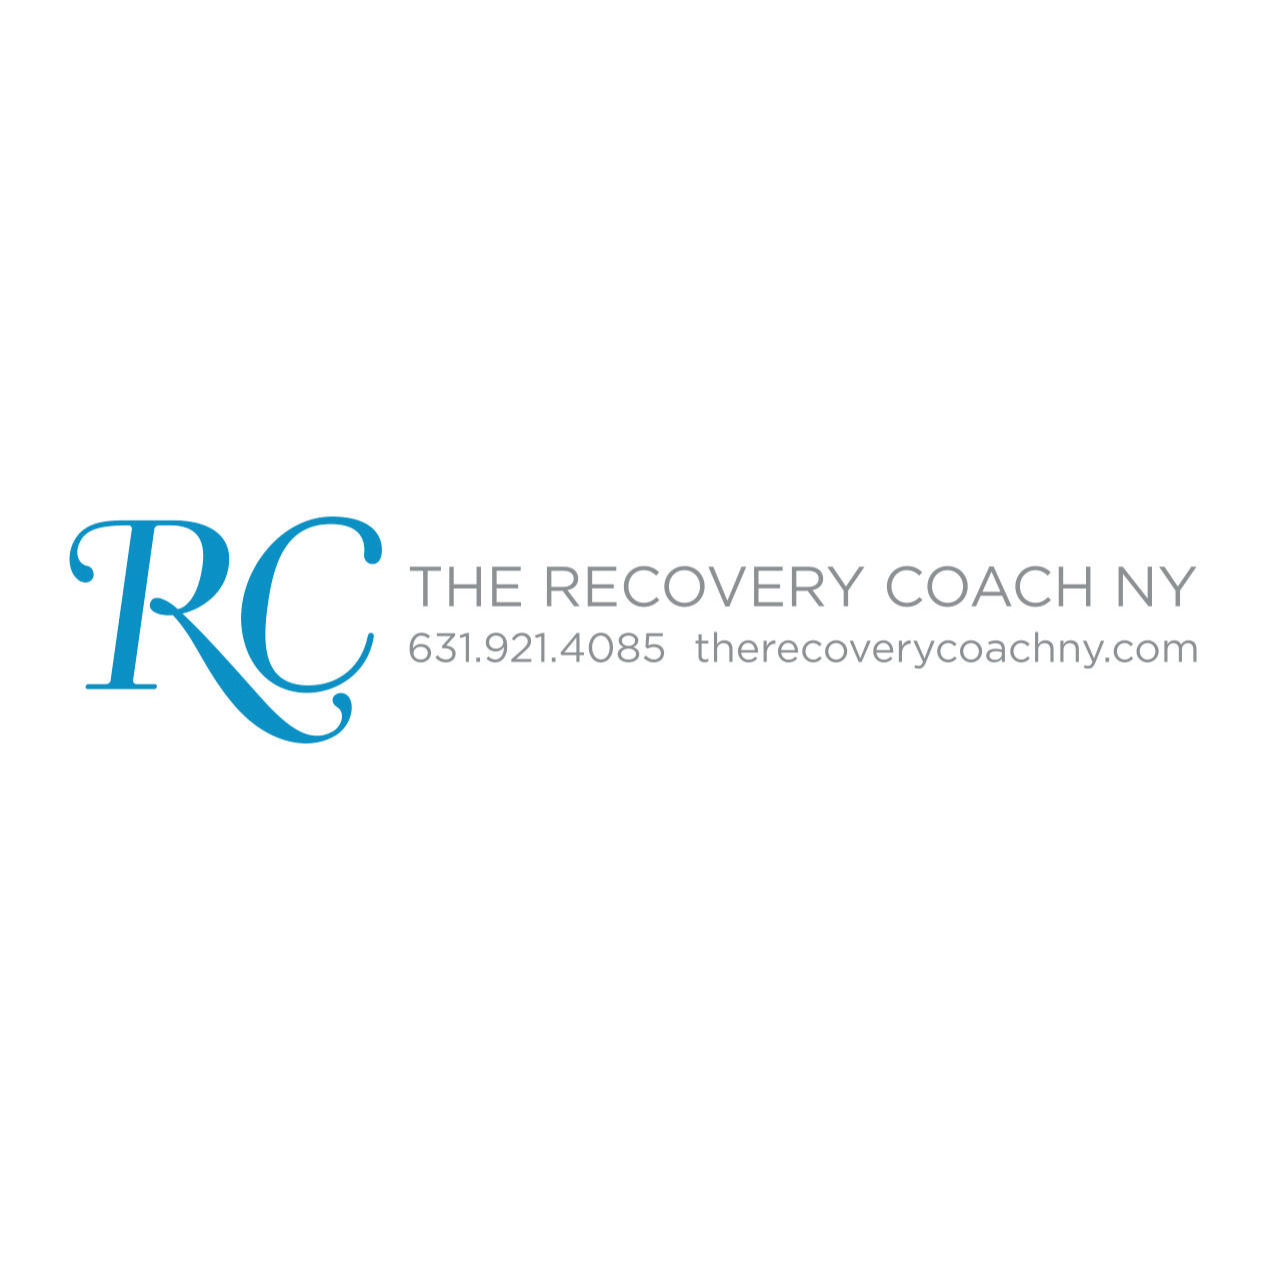 The Recovery Coach NYC LLC